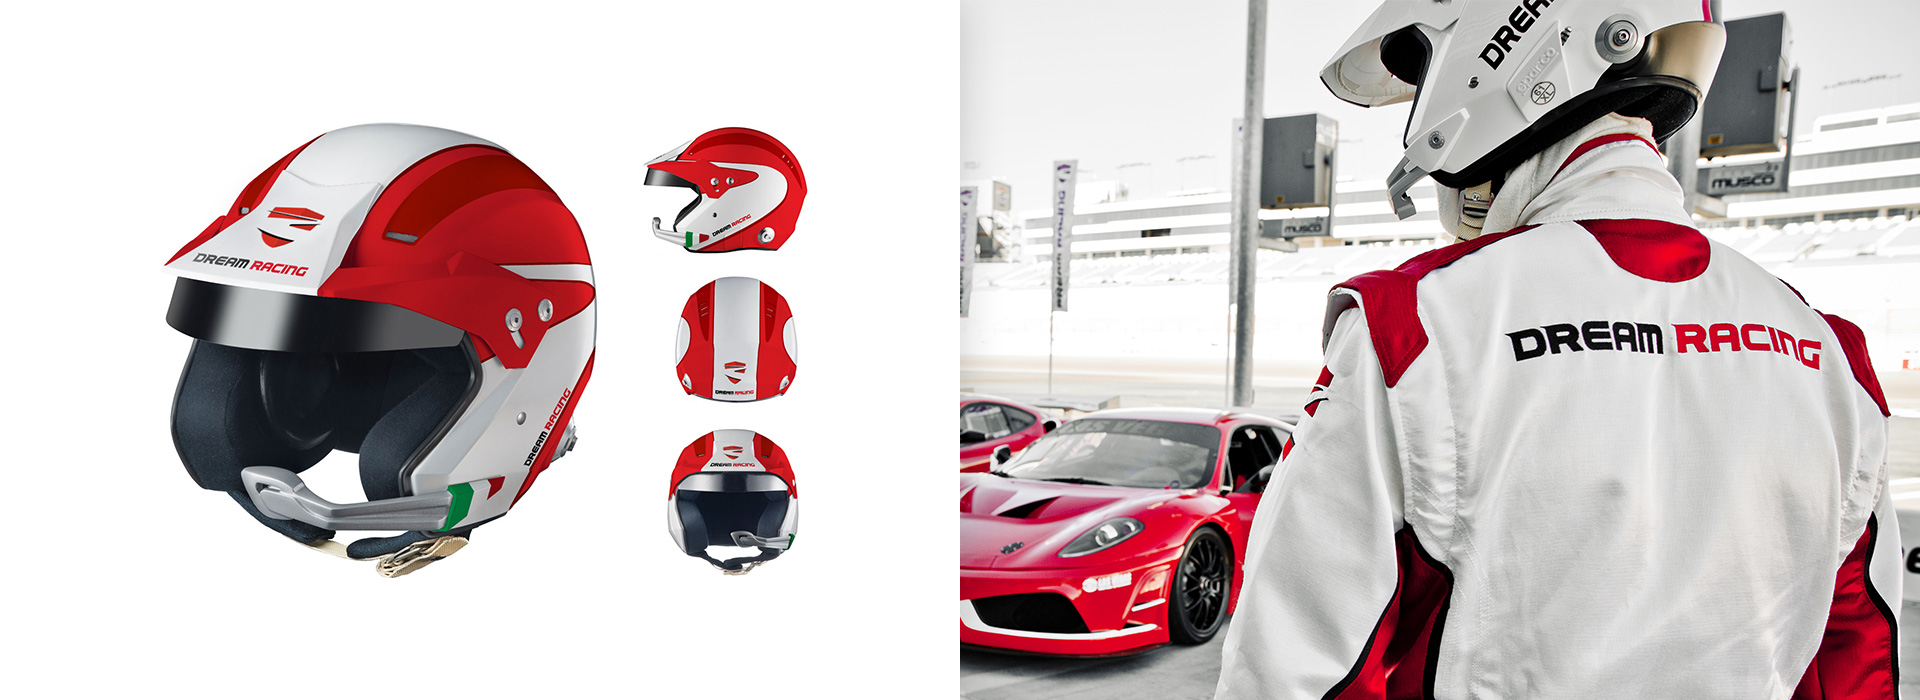 BP-DreamRacing-helmet